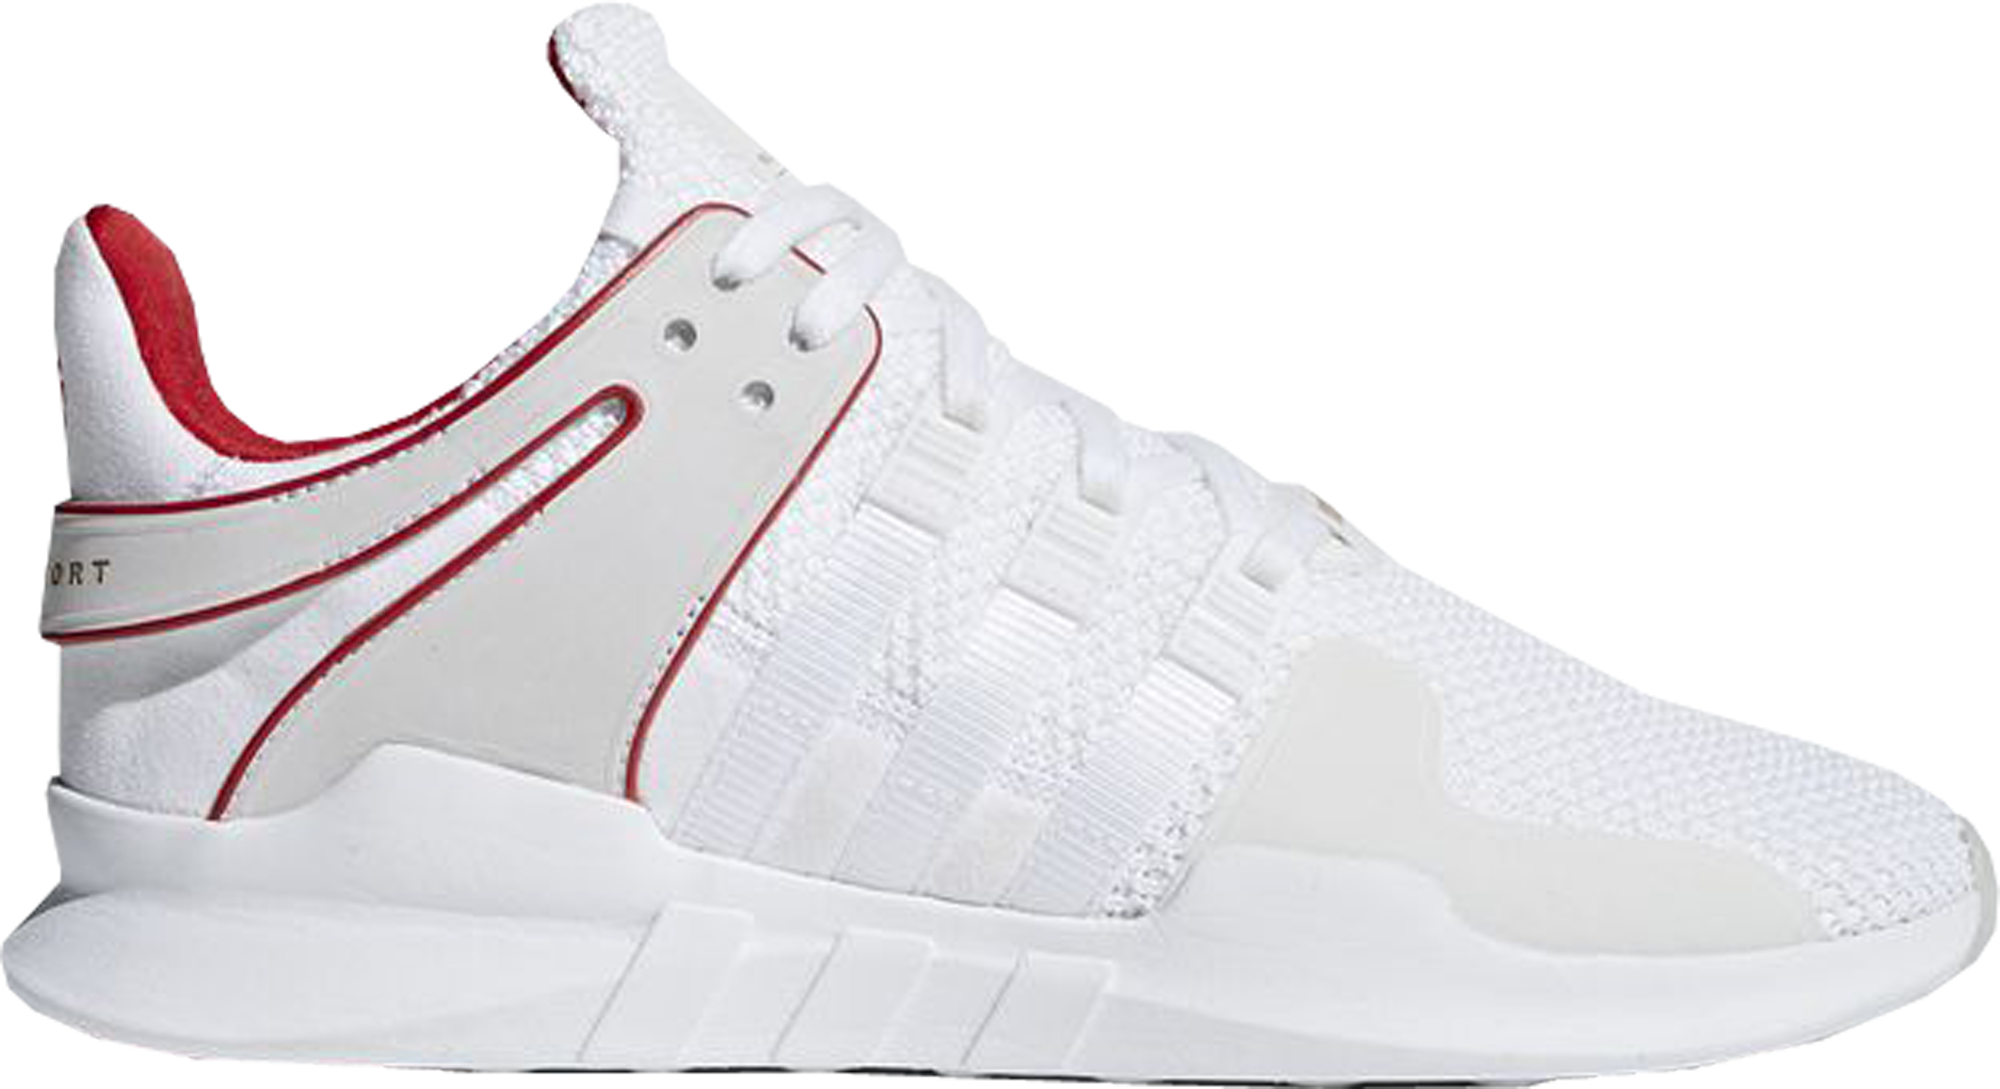 adidas EQT Support Adv Chinese New Year